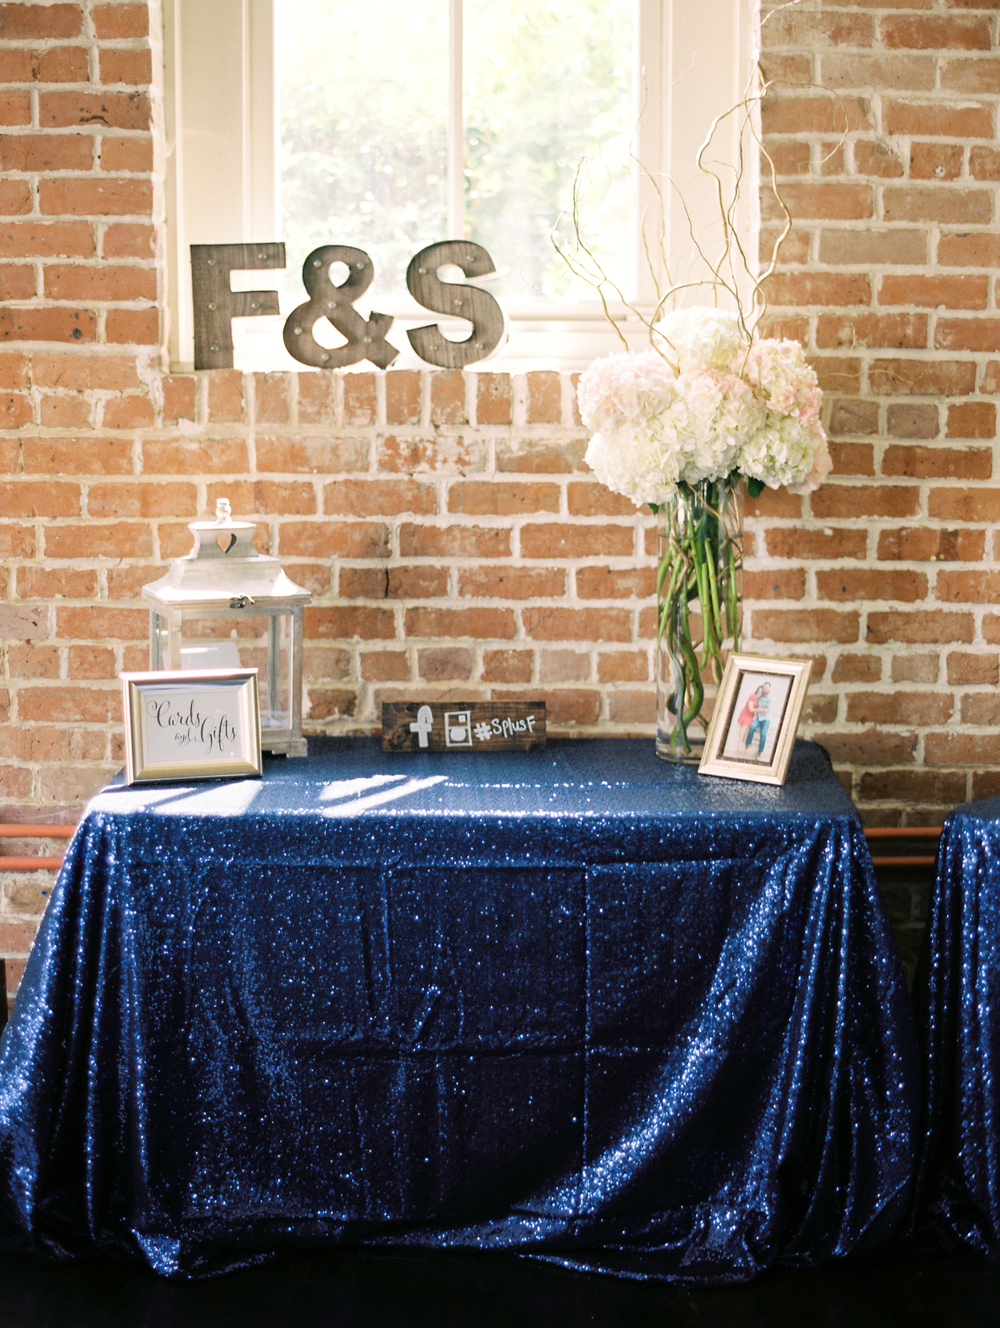 Dana-Fernandez-Photography-Style-Me-Pretty-Houston-Wedding-Photographer-Fine-Art-Film-Station-3-venue-11.jpg